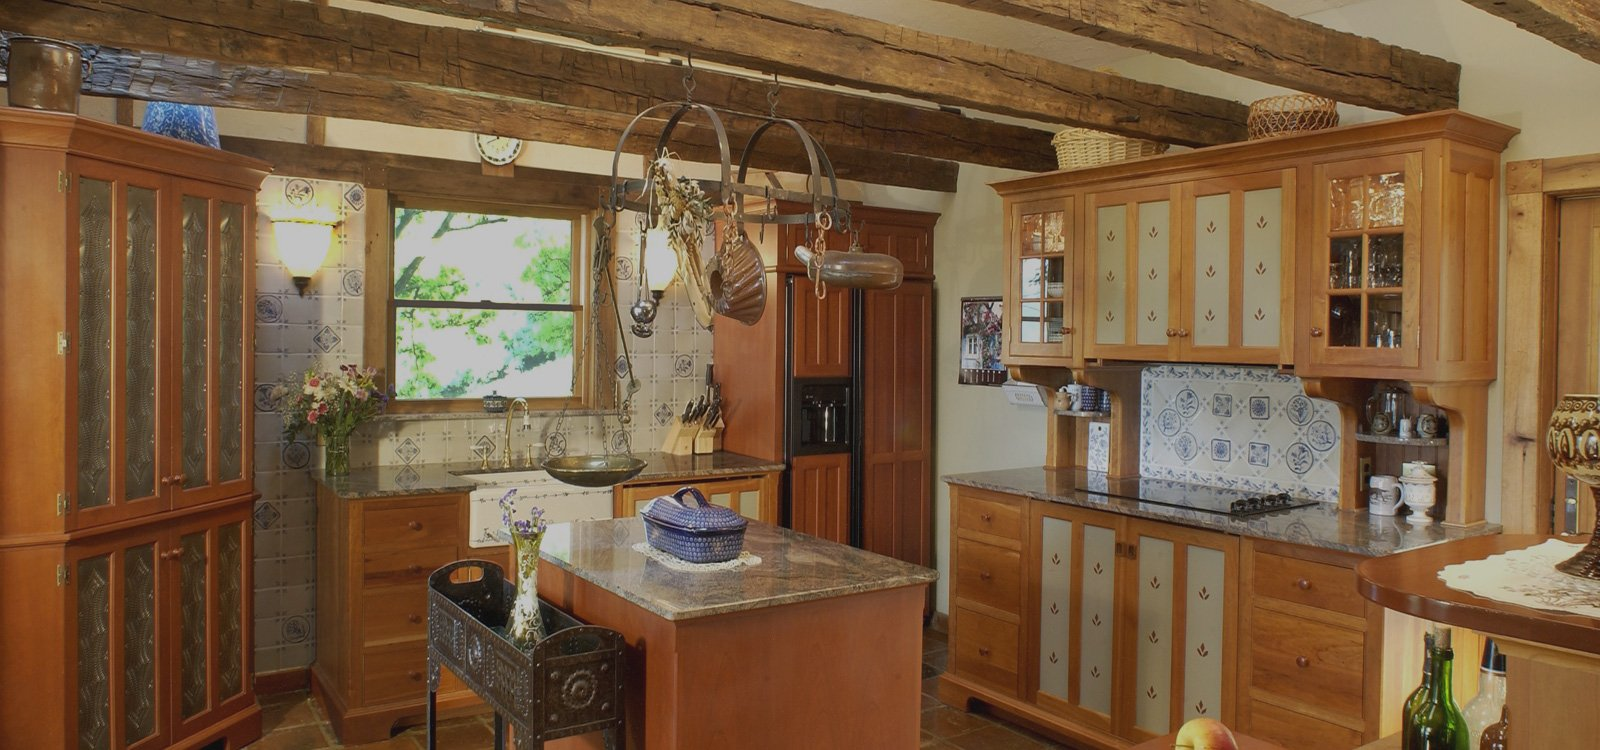 concealed ovens in kitchen to save space